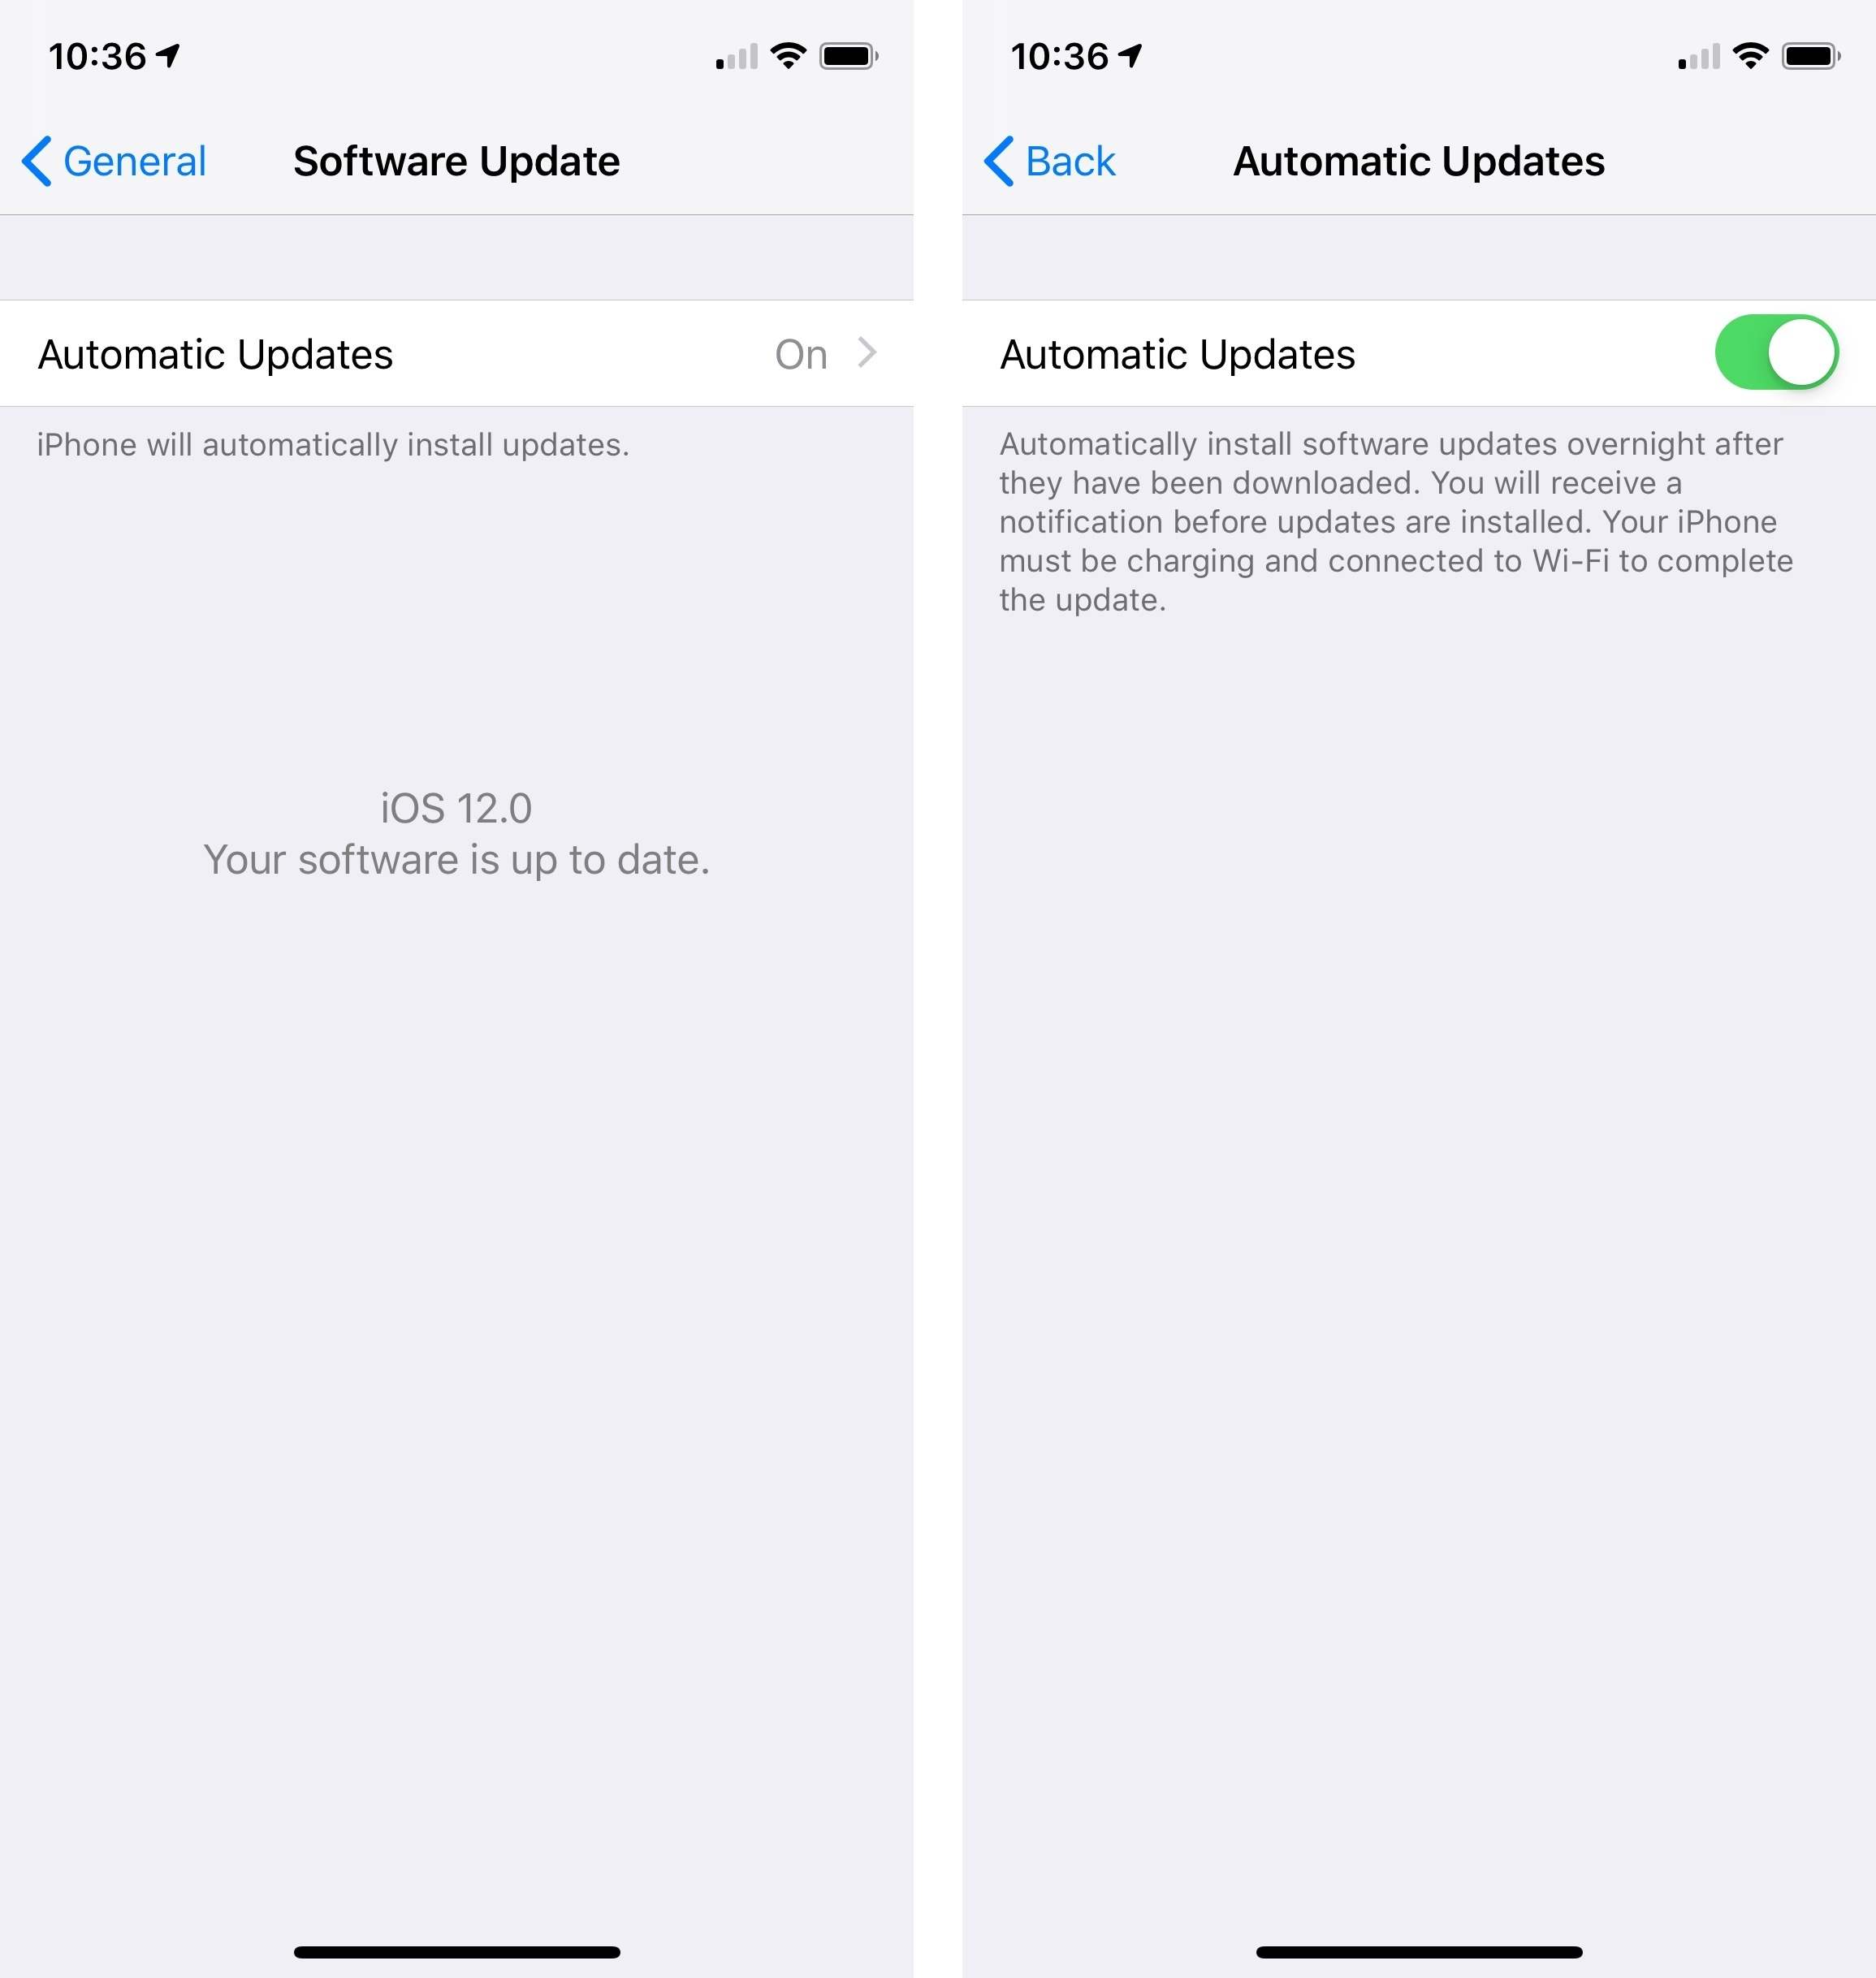 Automatic software update settings in iOS 12.